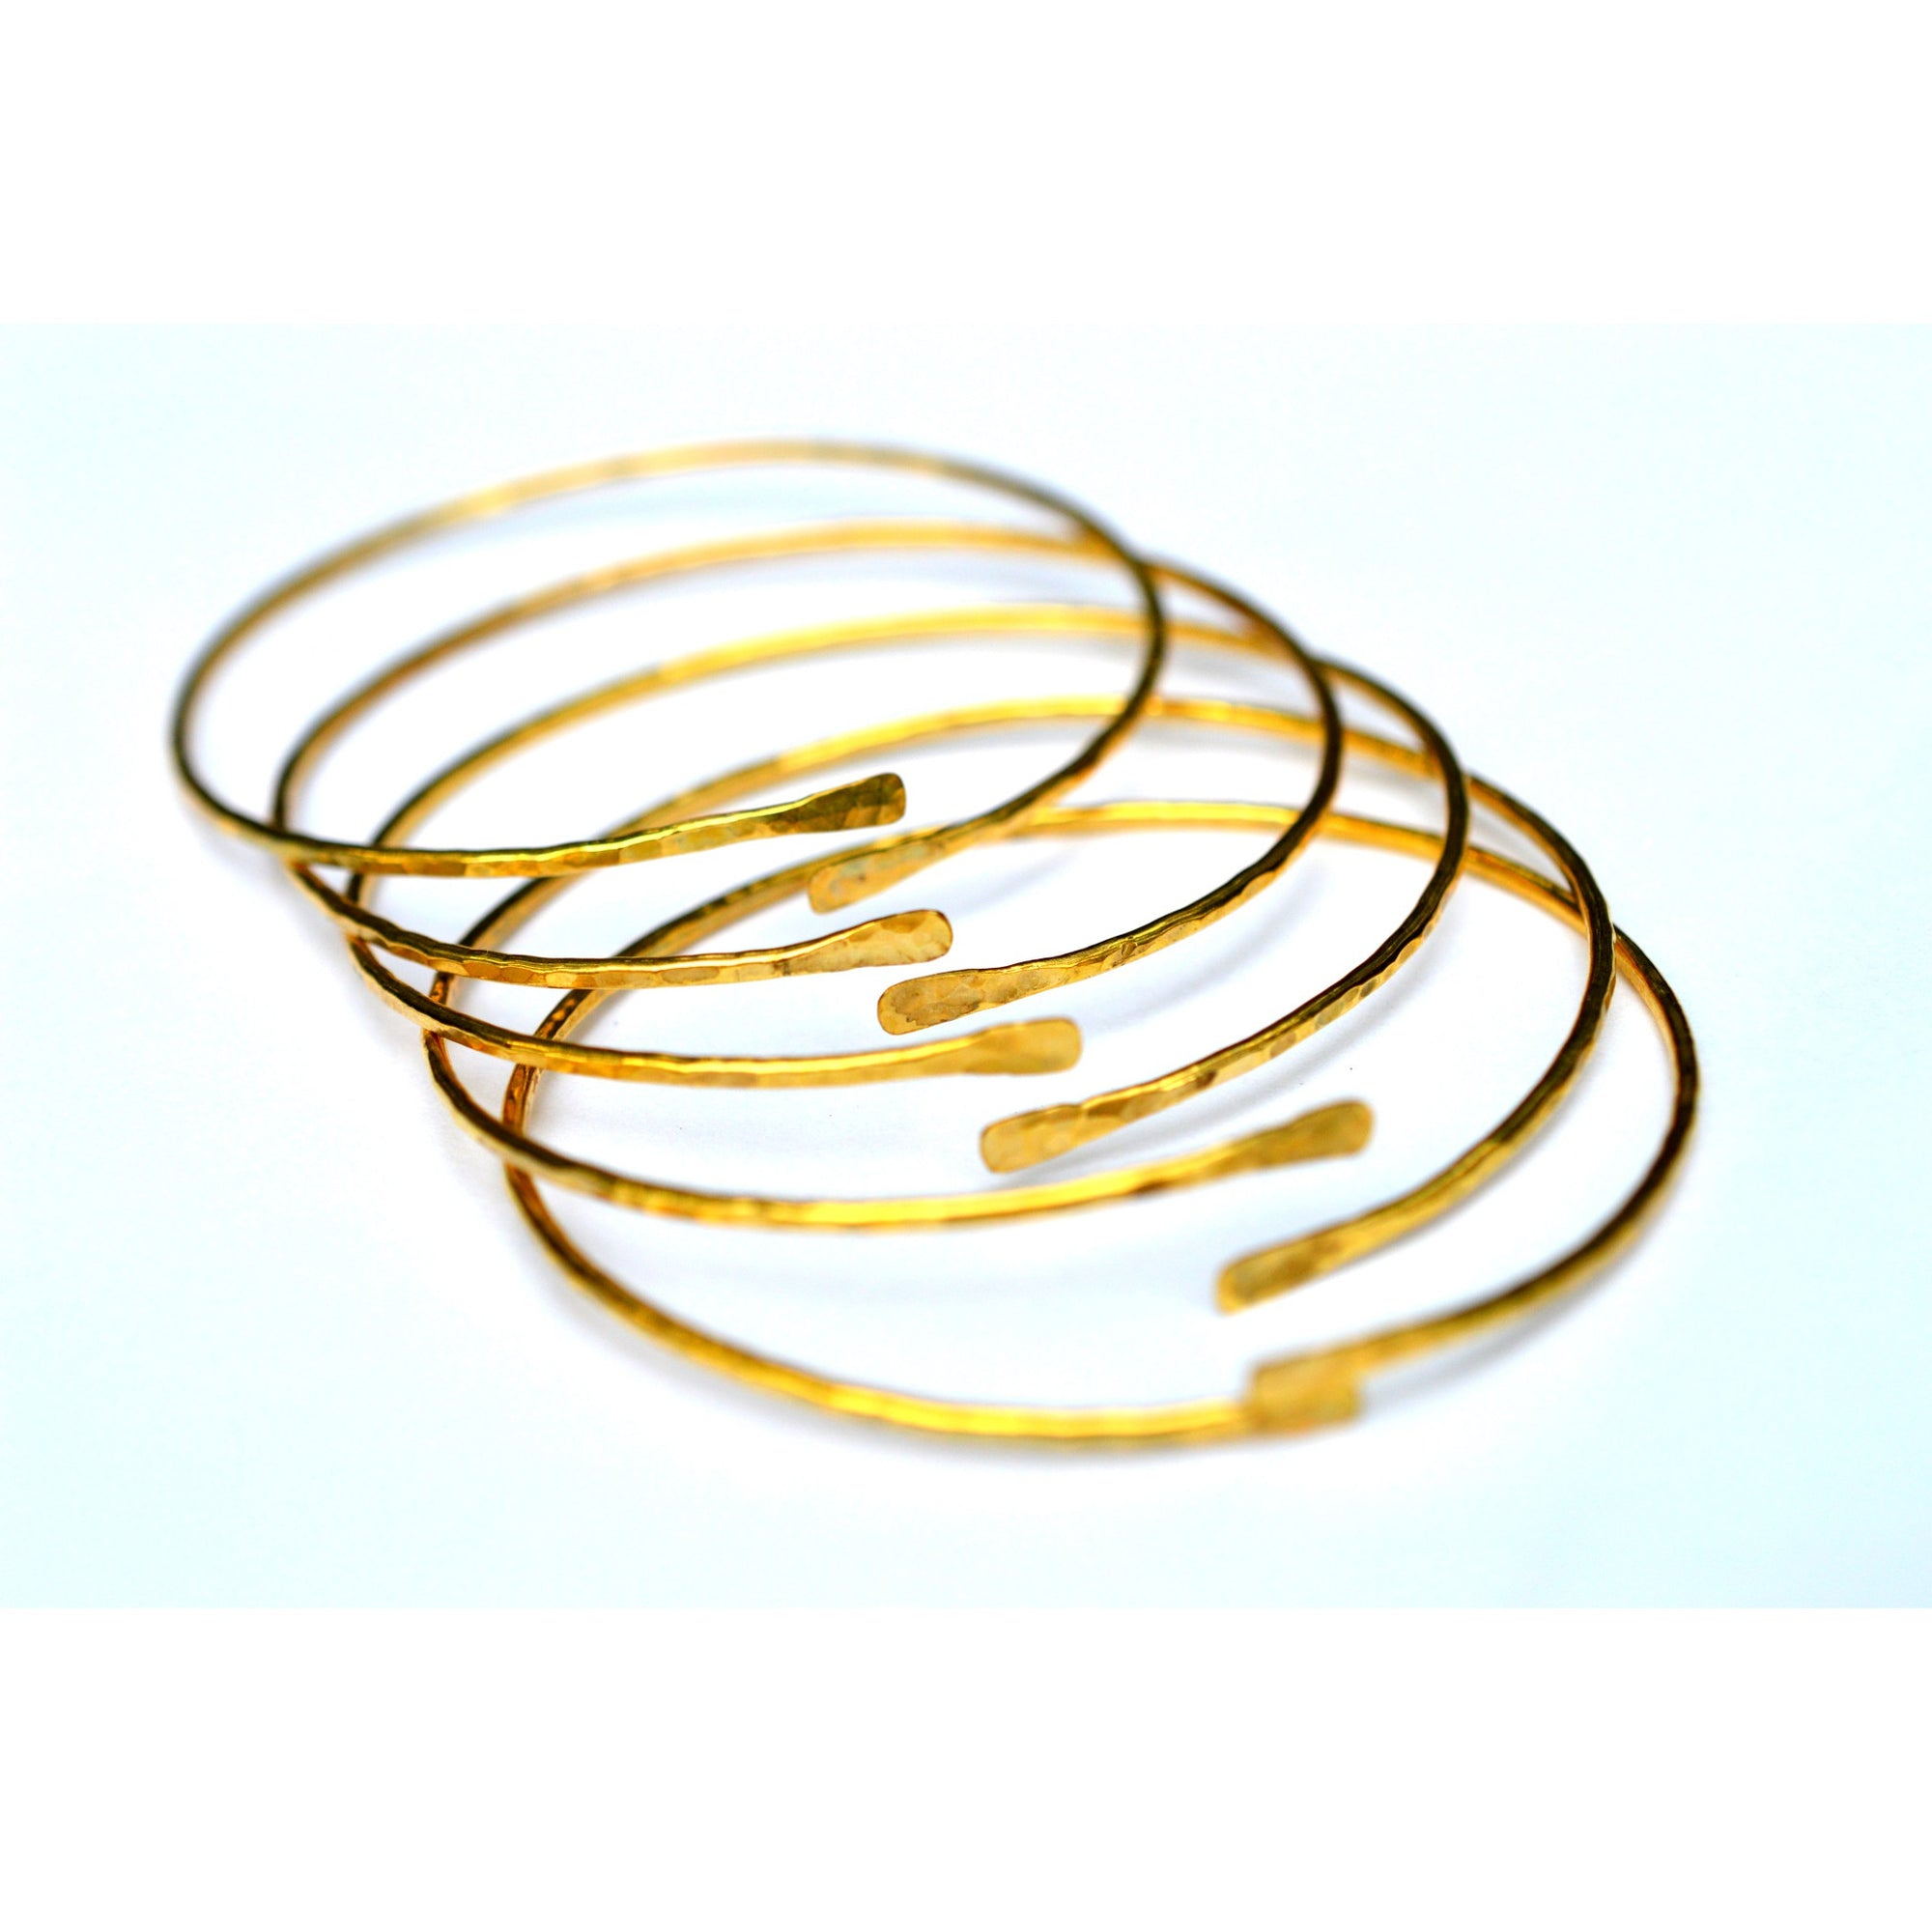 caved thin bracelet gift dubai womens pc bangle product gold fashion s jewelry bangles women luxury